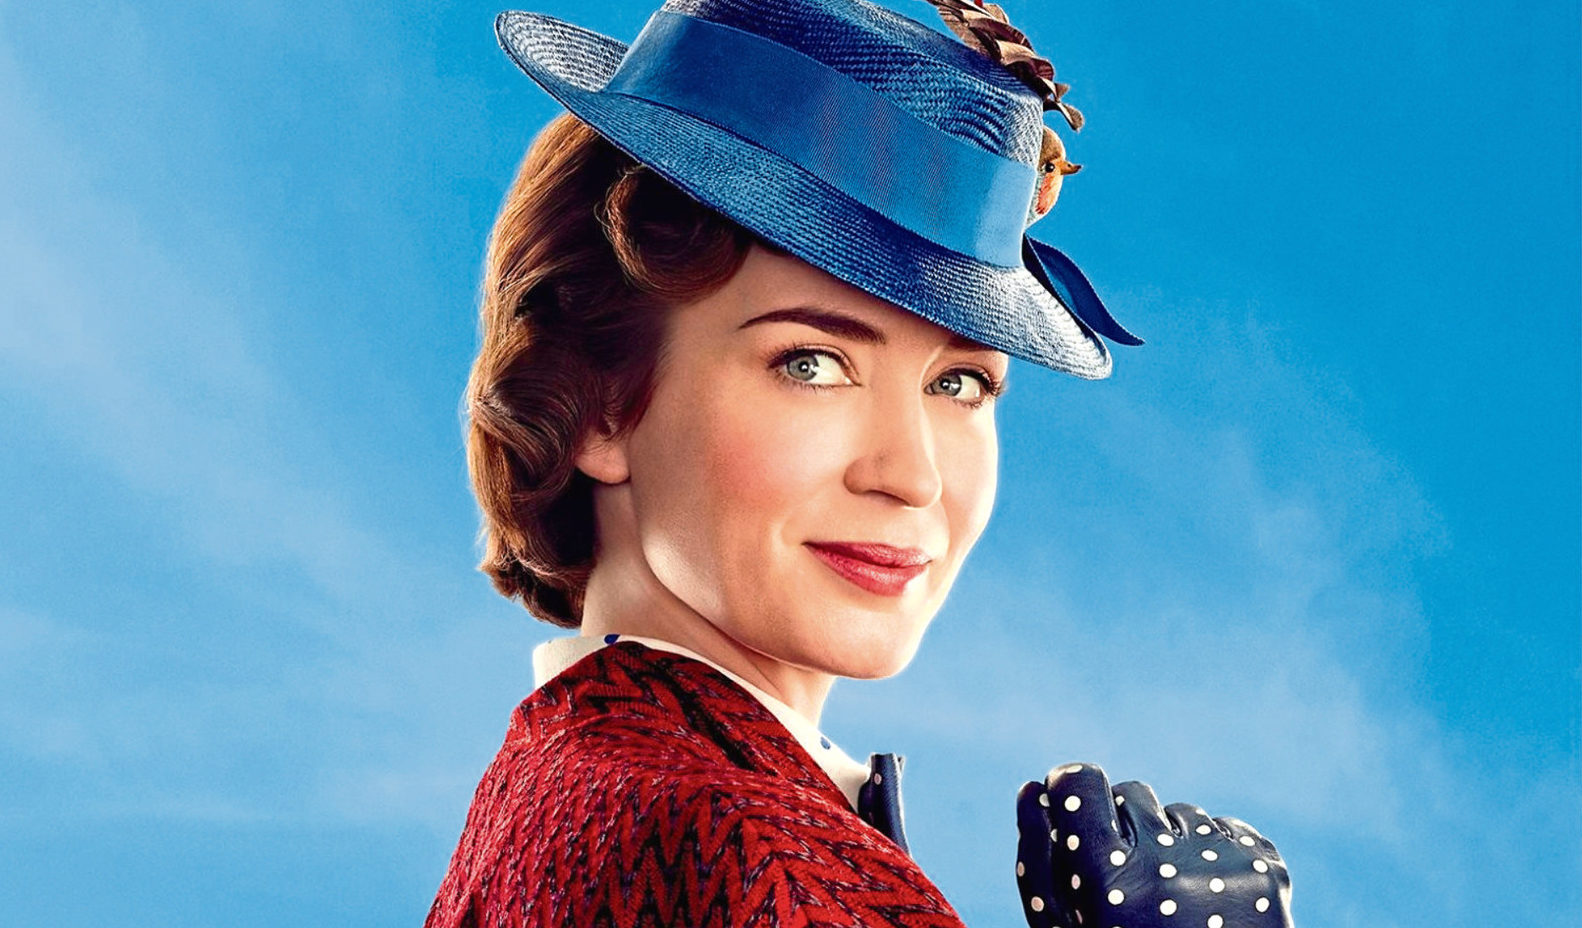 Emily Blunt as Mary Poppins in the remake of the film. (All Star/Walt Disney)